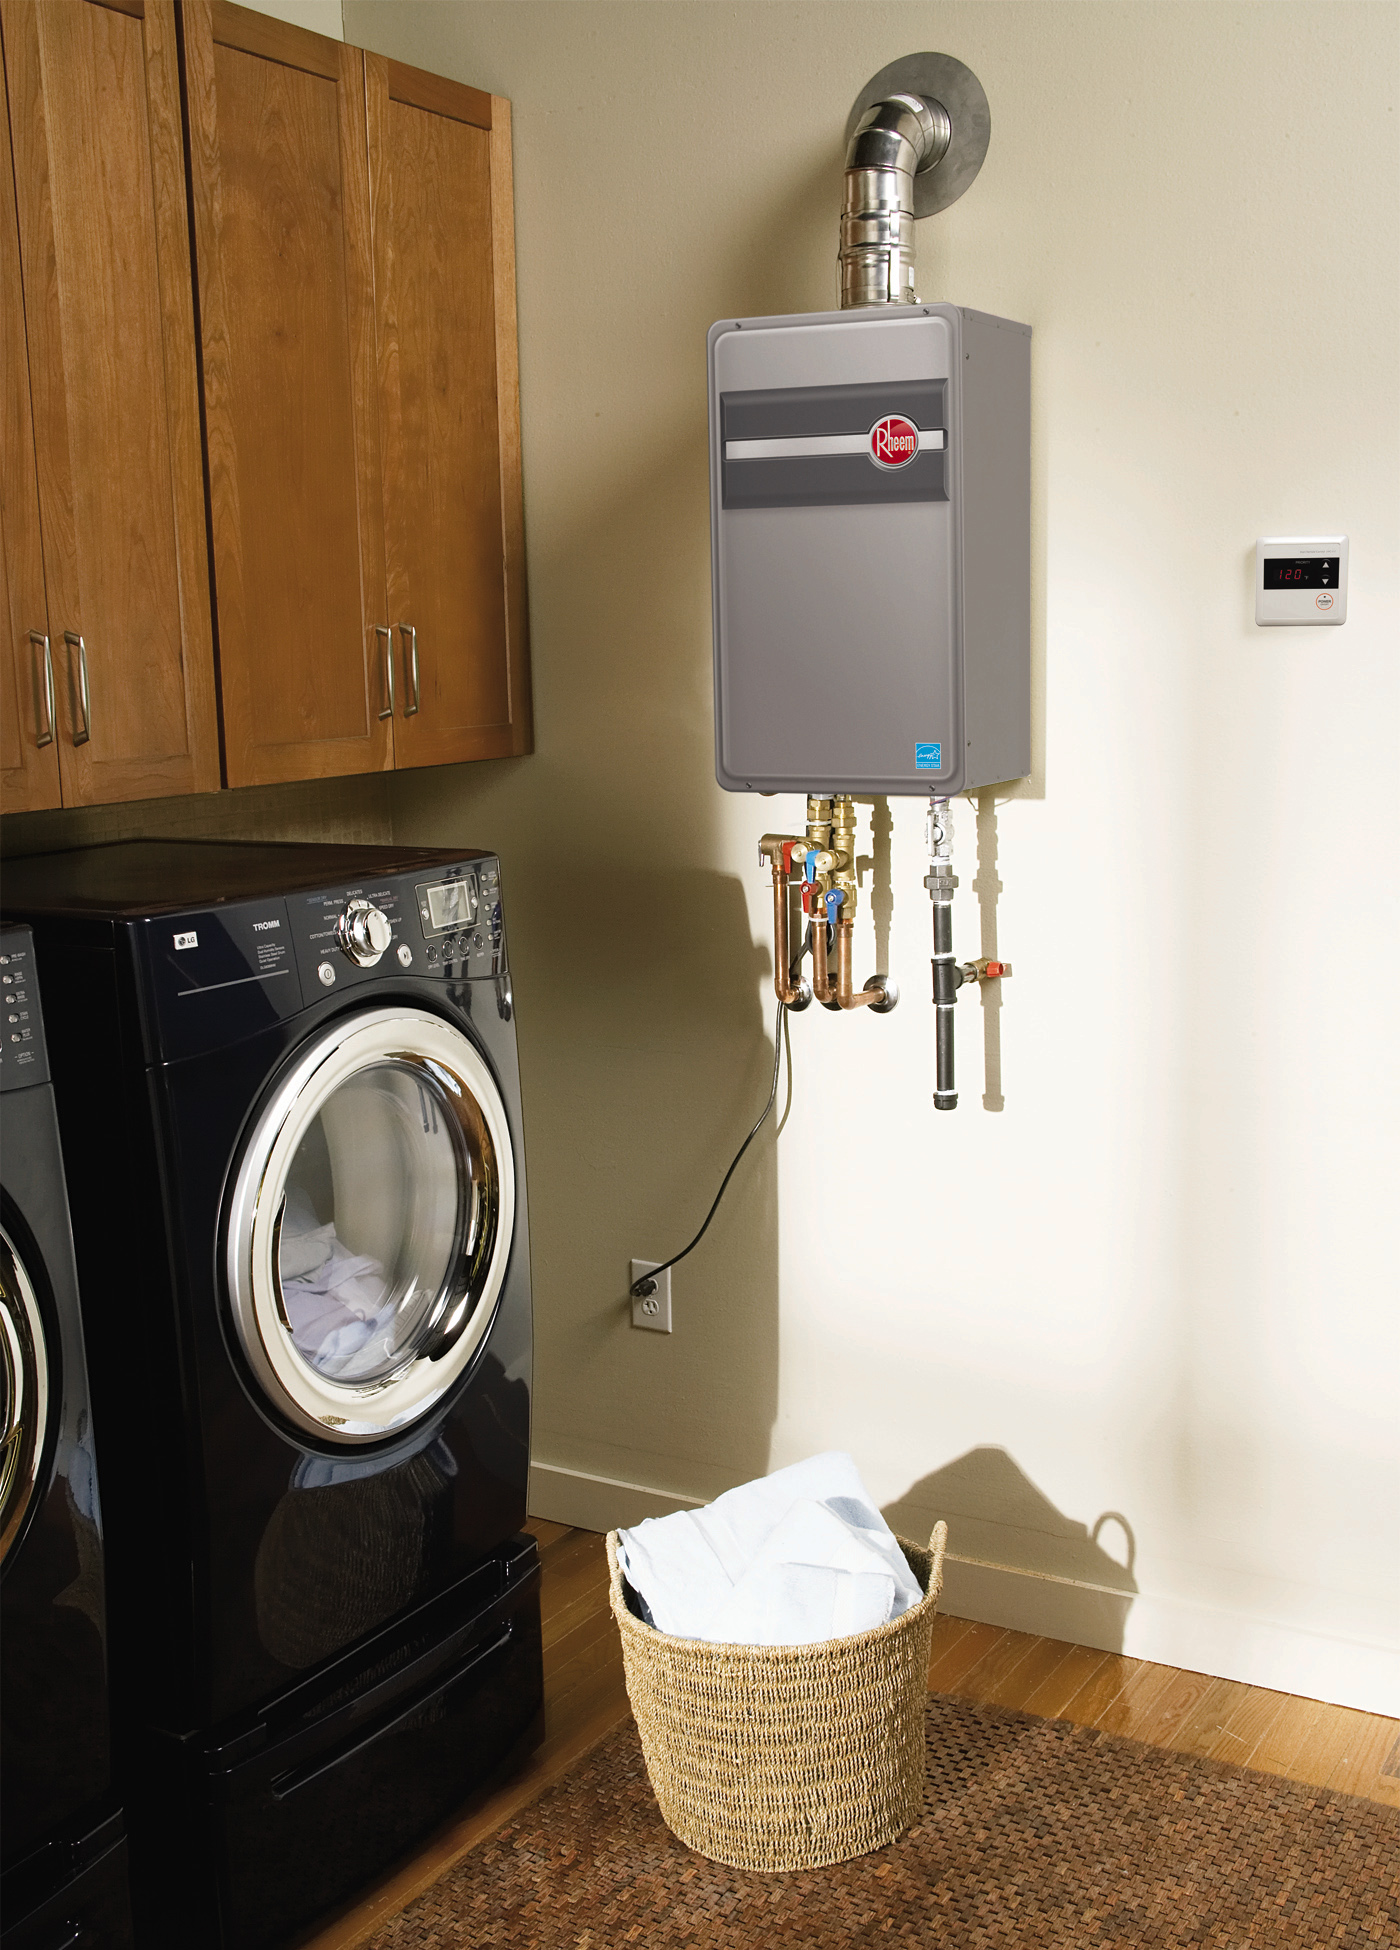 camper hot water heater instructions